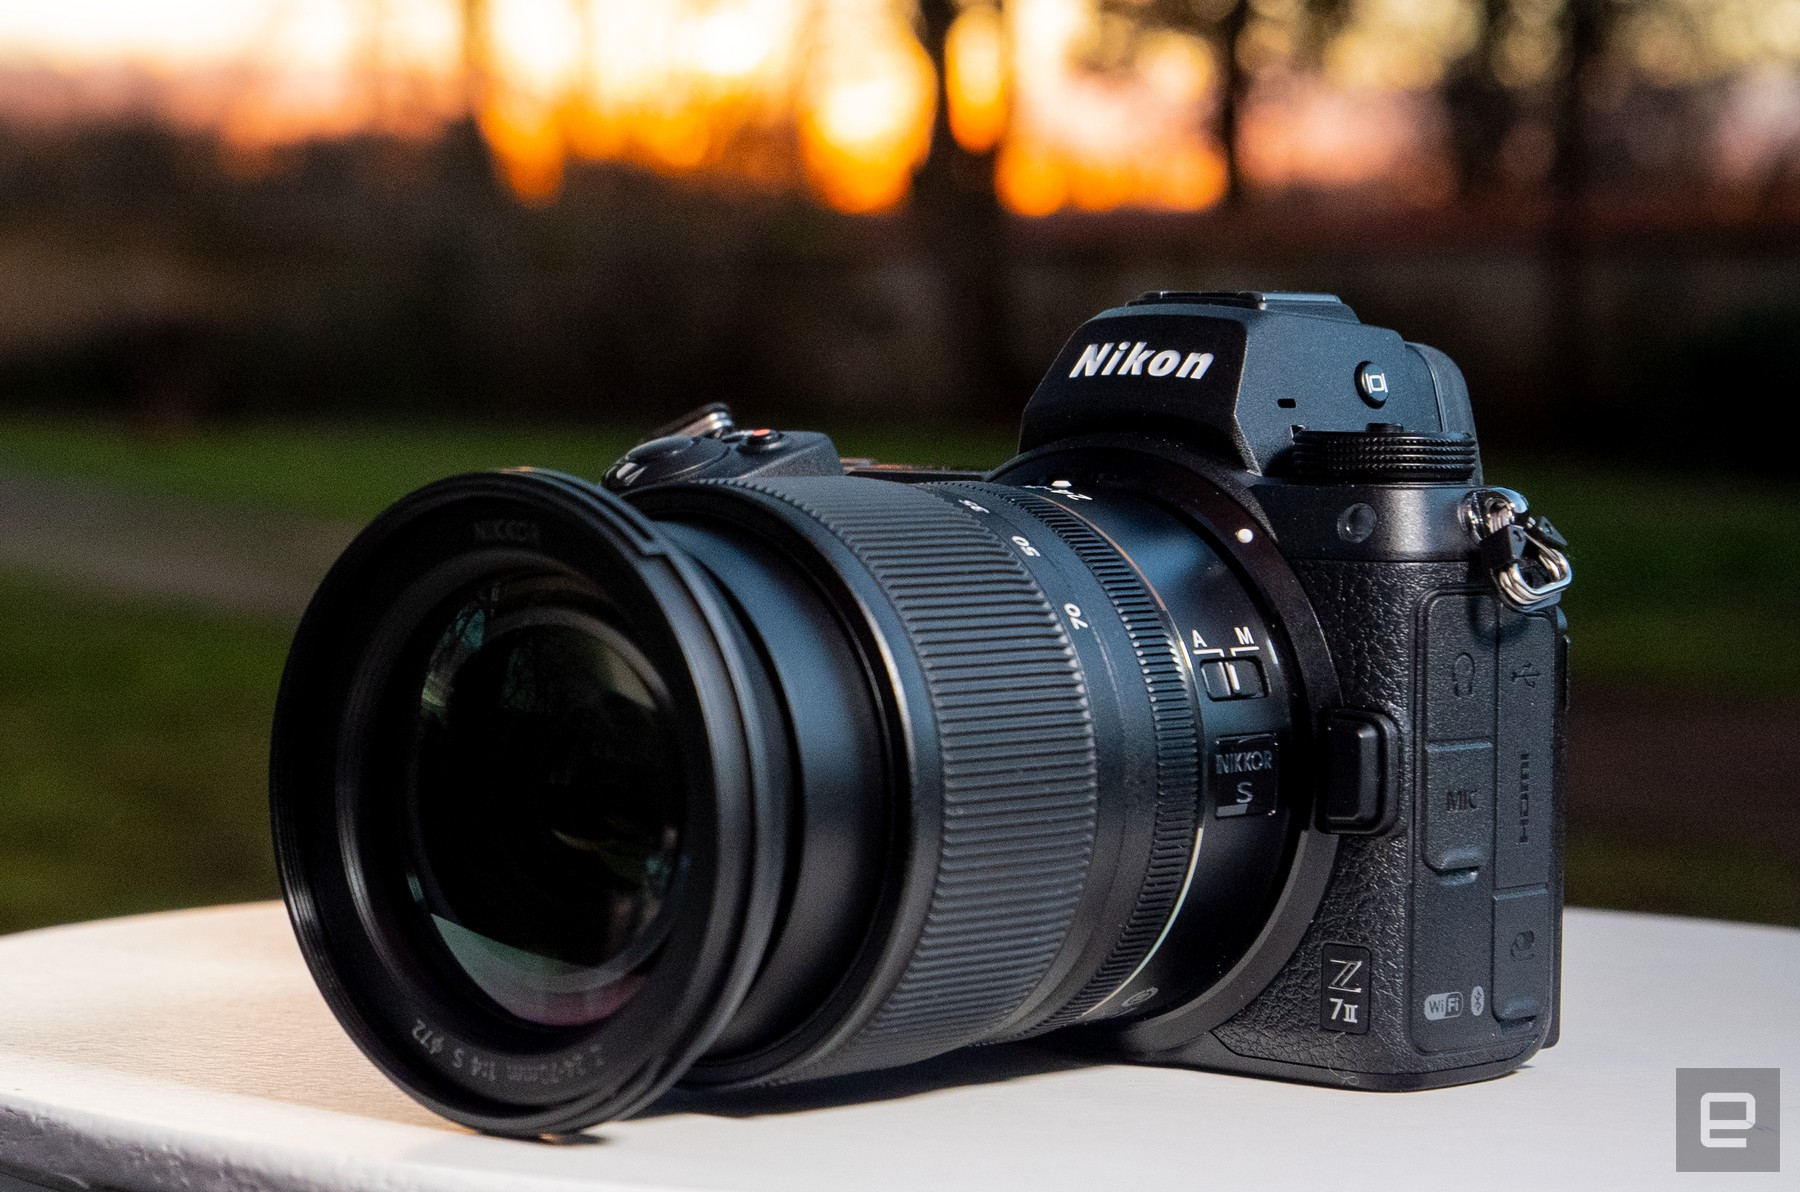 Nikon Z7 II review: A solid upgrade that lags behind its rivals